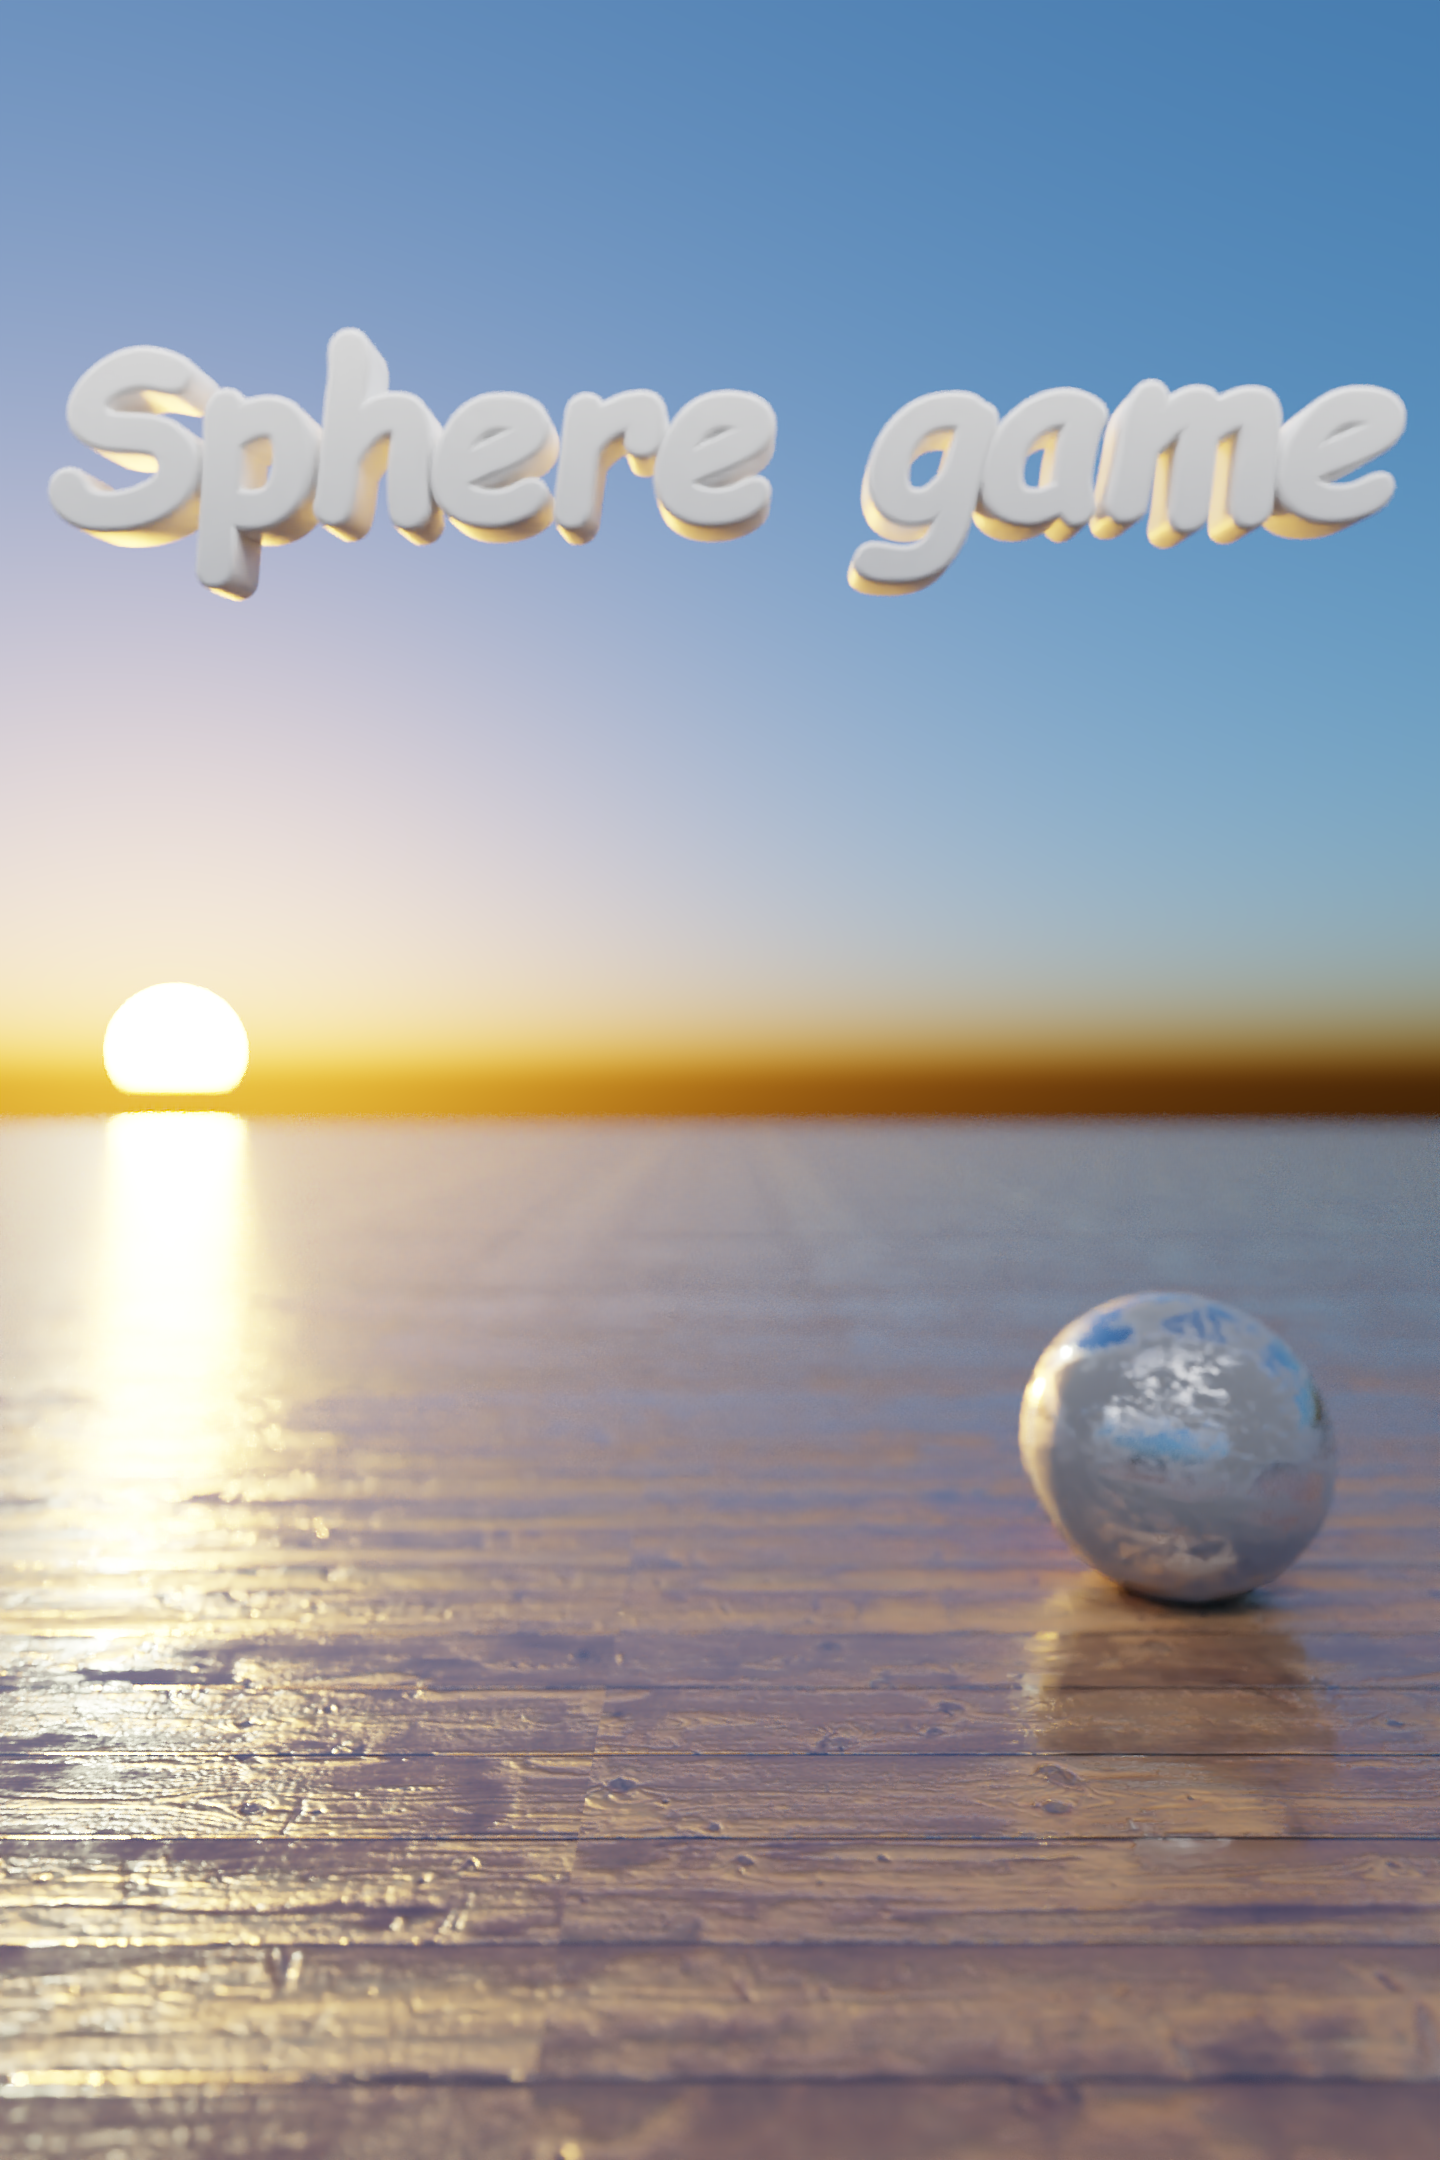 Sphere Game preview image 1